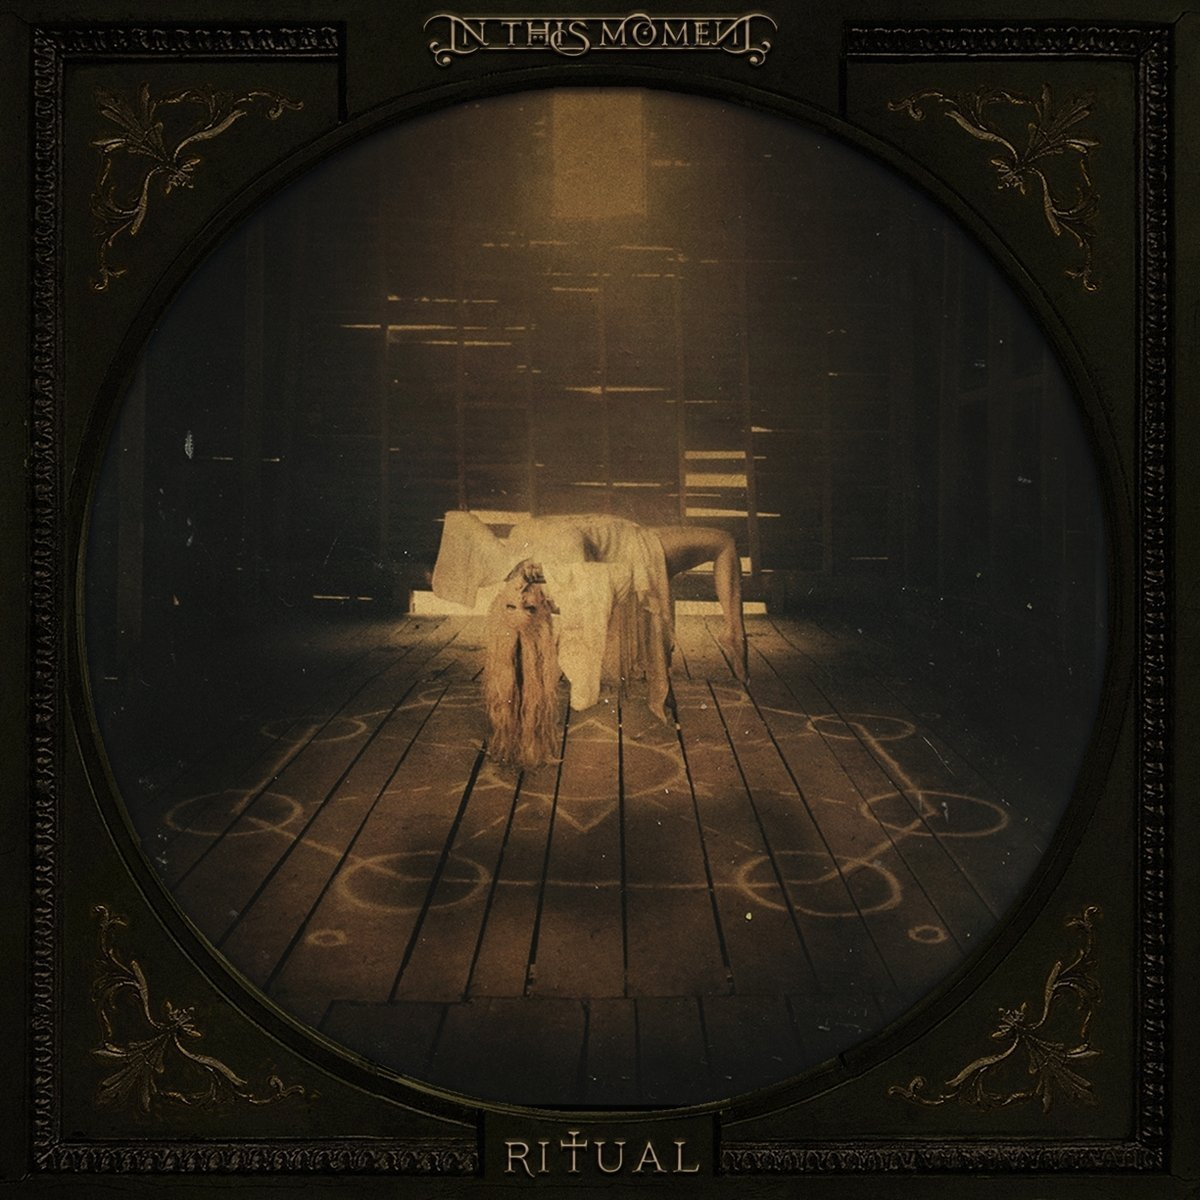 CD : In This Moment - Ritual [Explicit Content] (CD)